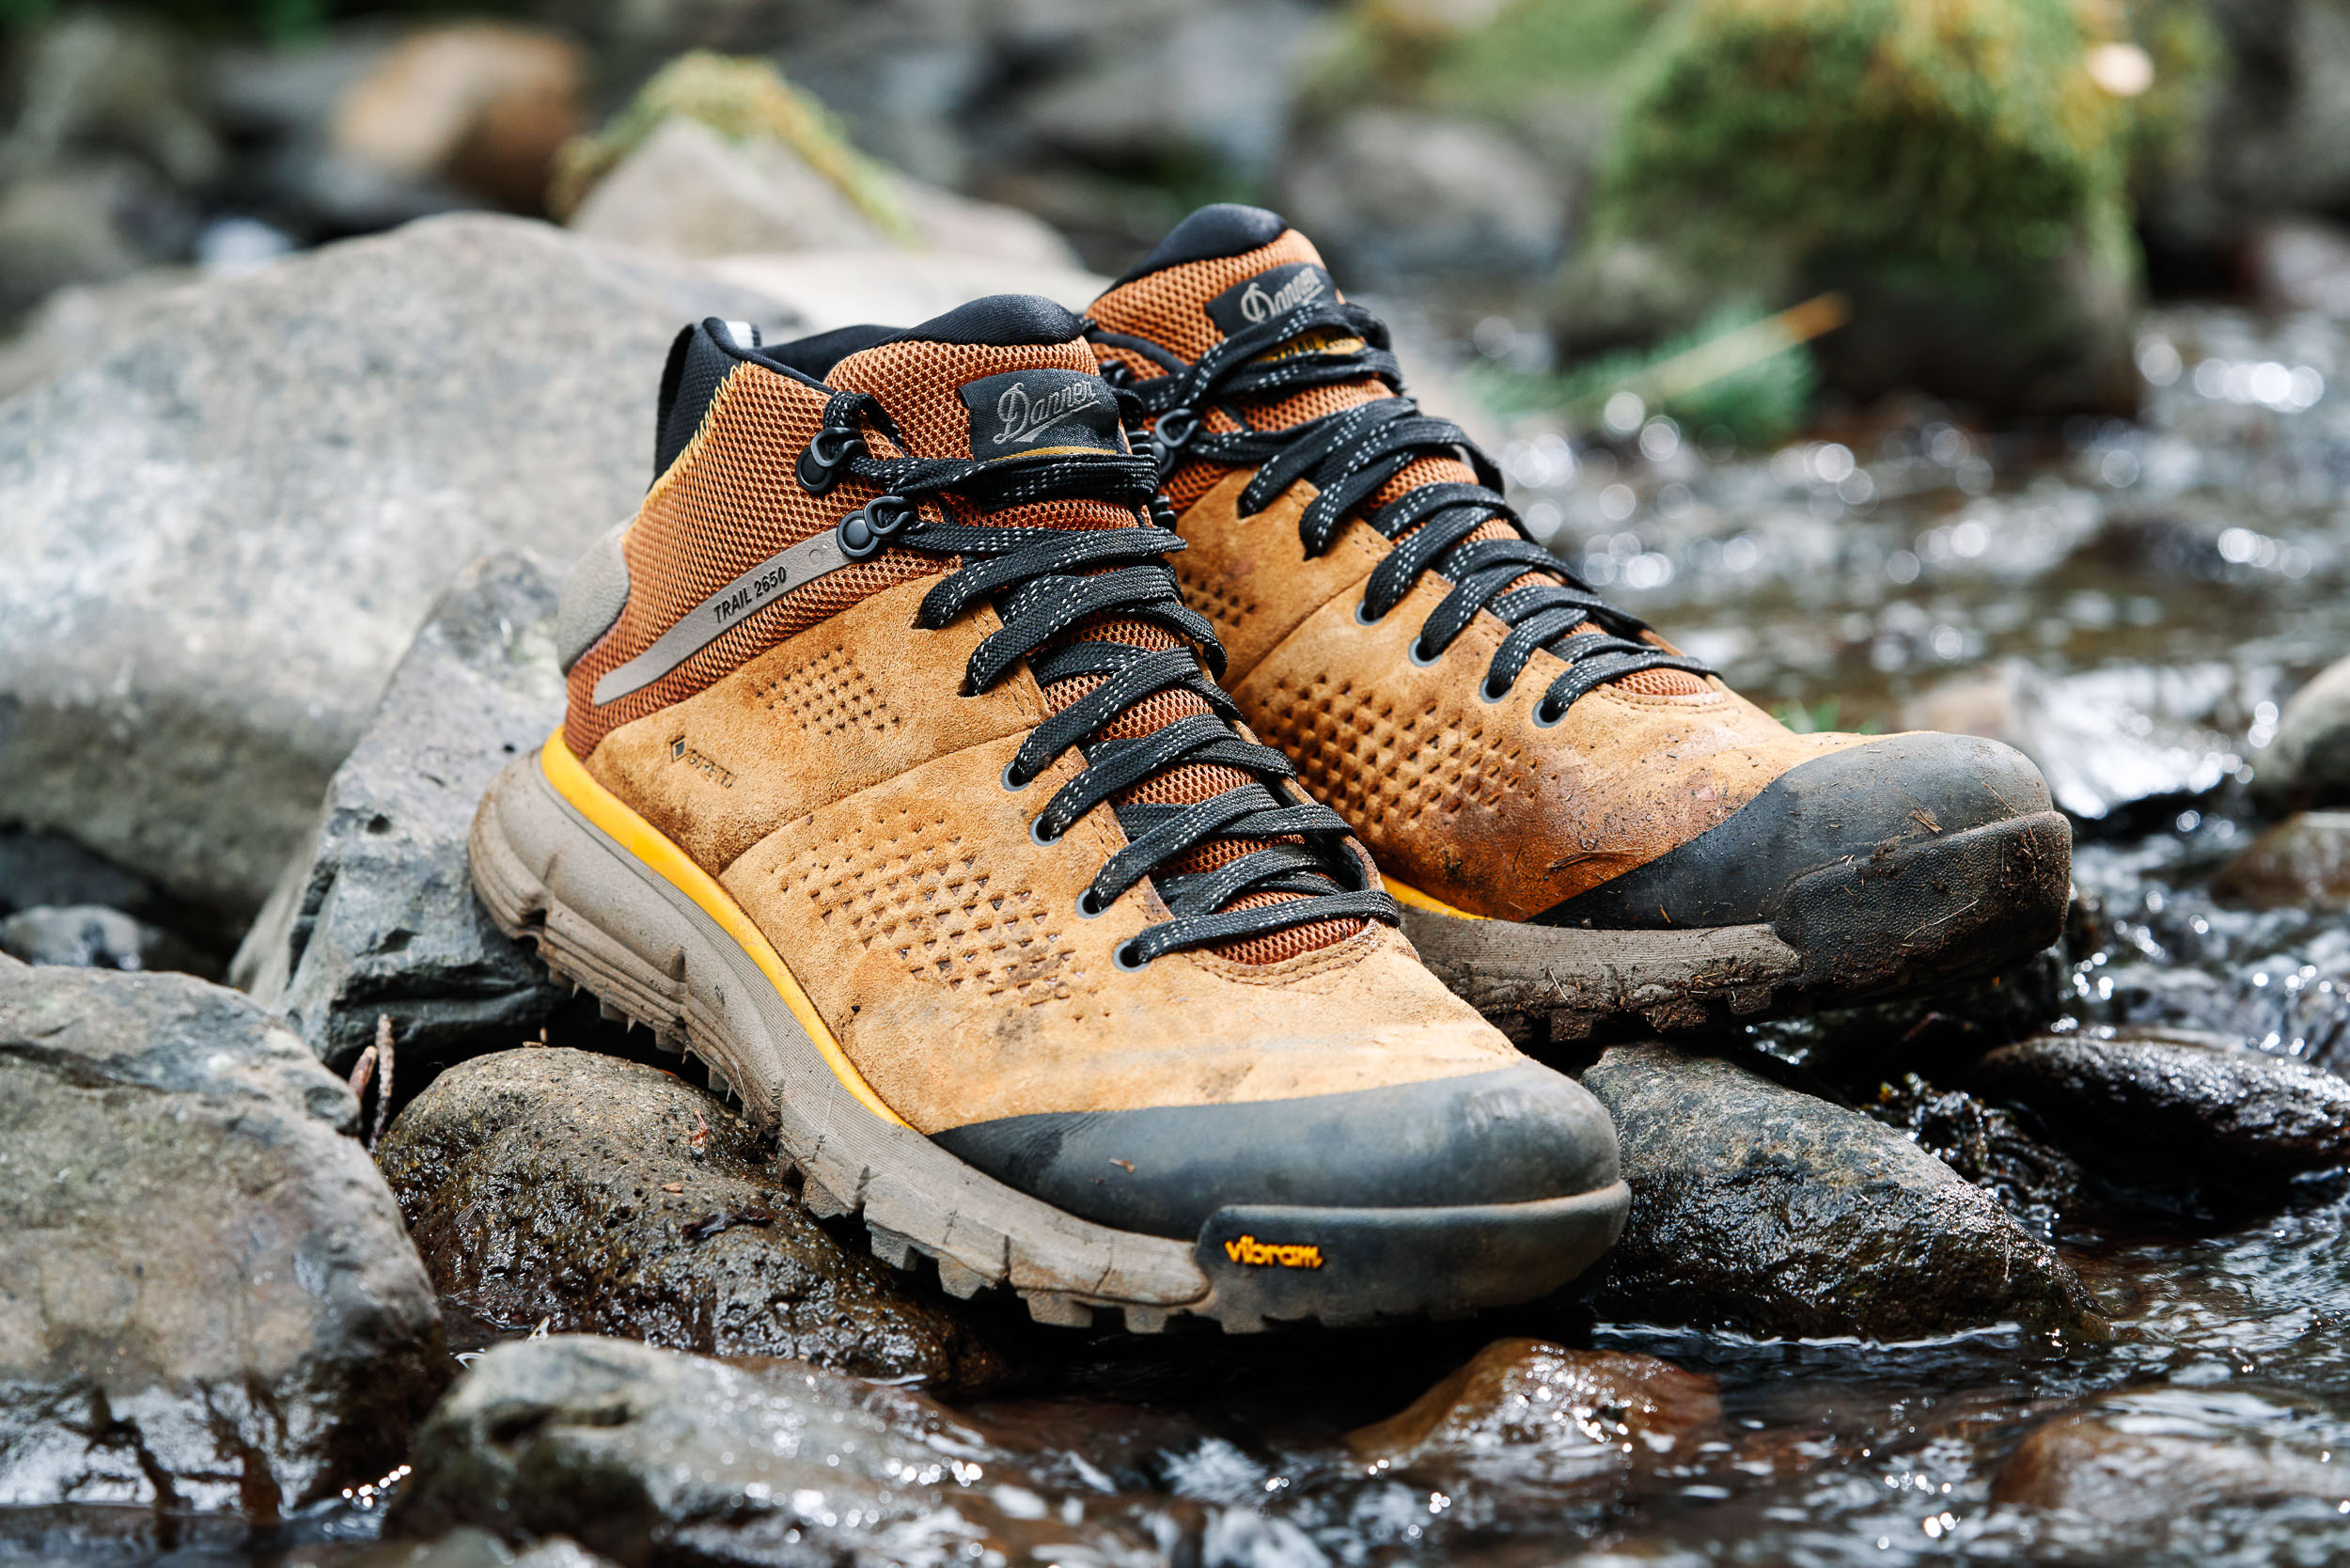 Danner 2650 product shot on the Pacific Crest Trail